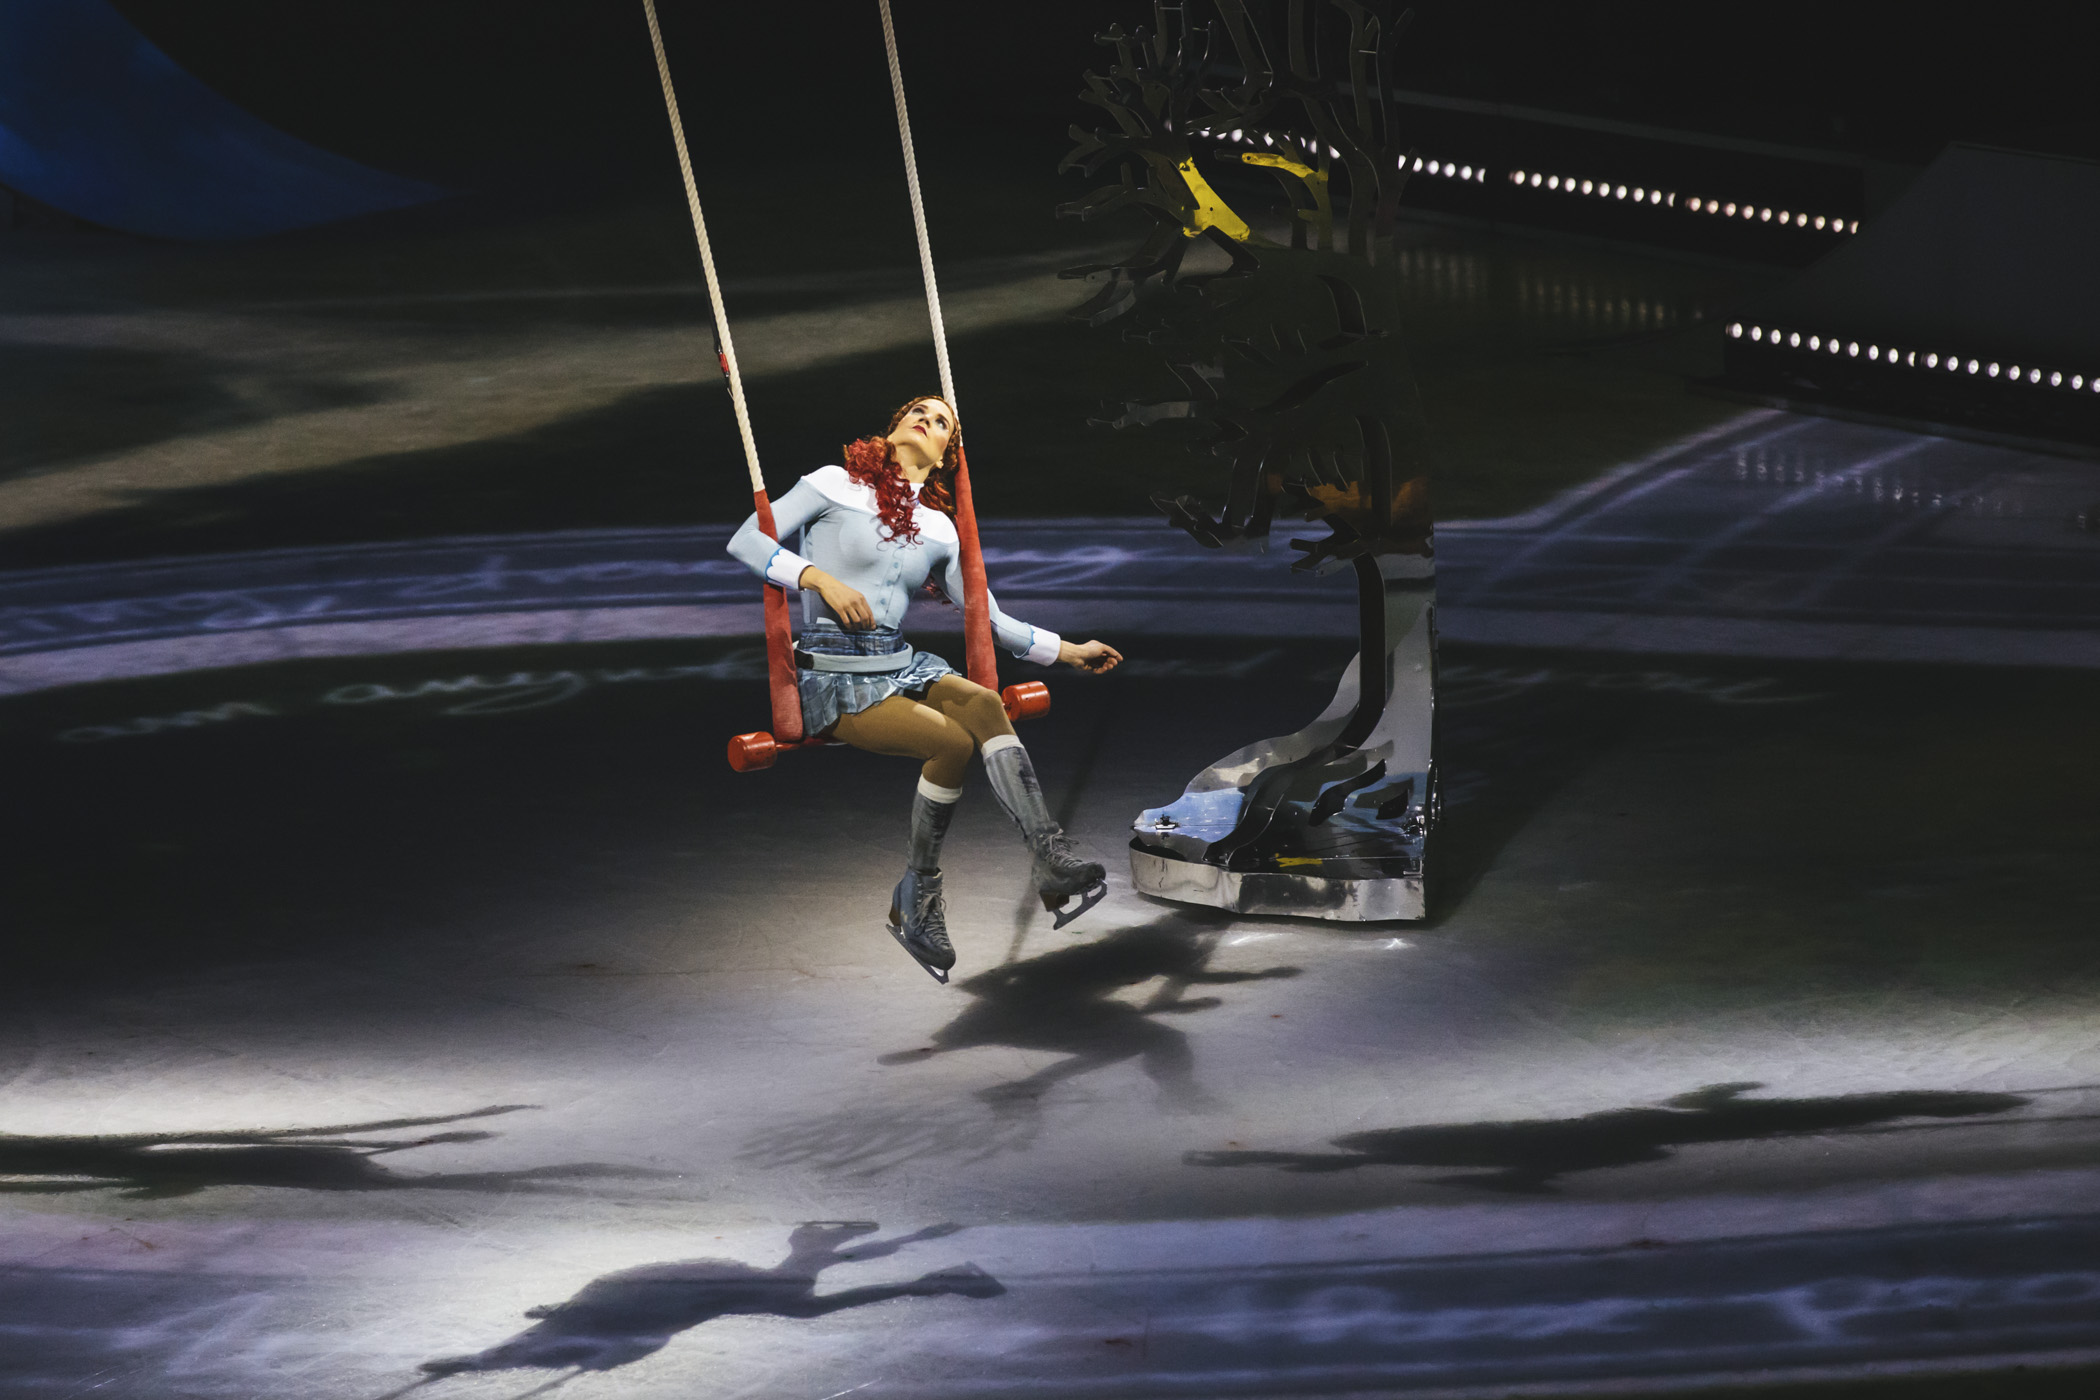 <p>Cirque du Soleil's newest show CRYSTAL just opened in Everett, and things are getting icy! For the first time (and their 42nd creation) the company is exploring the artistic possibilities of ice. Think skating, aerobic feats all on a frozen playground! CRYSTAL runs through April 14, 2019 at Everett's Angel of the Winds Arena. More info on{&amp;nbsp;}cirquedusoleil.com/crystal. (Image: Sunita Martini / Seattle Refined){&amp;nbsp;}</p>